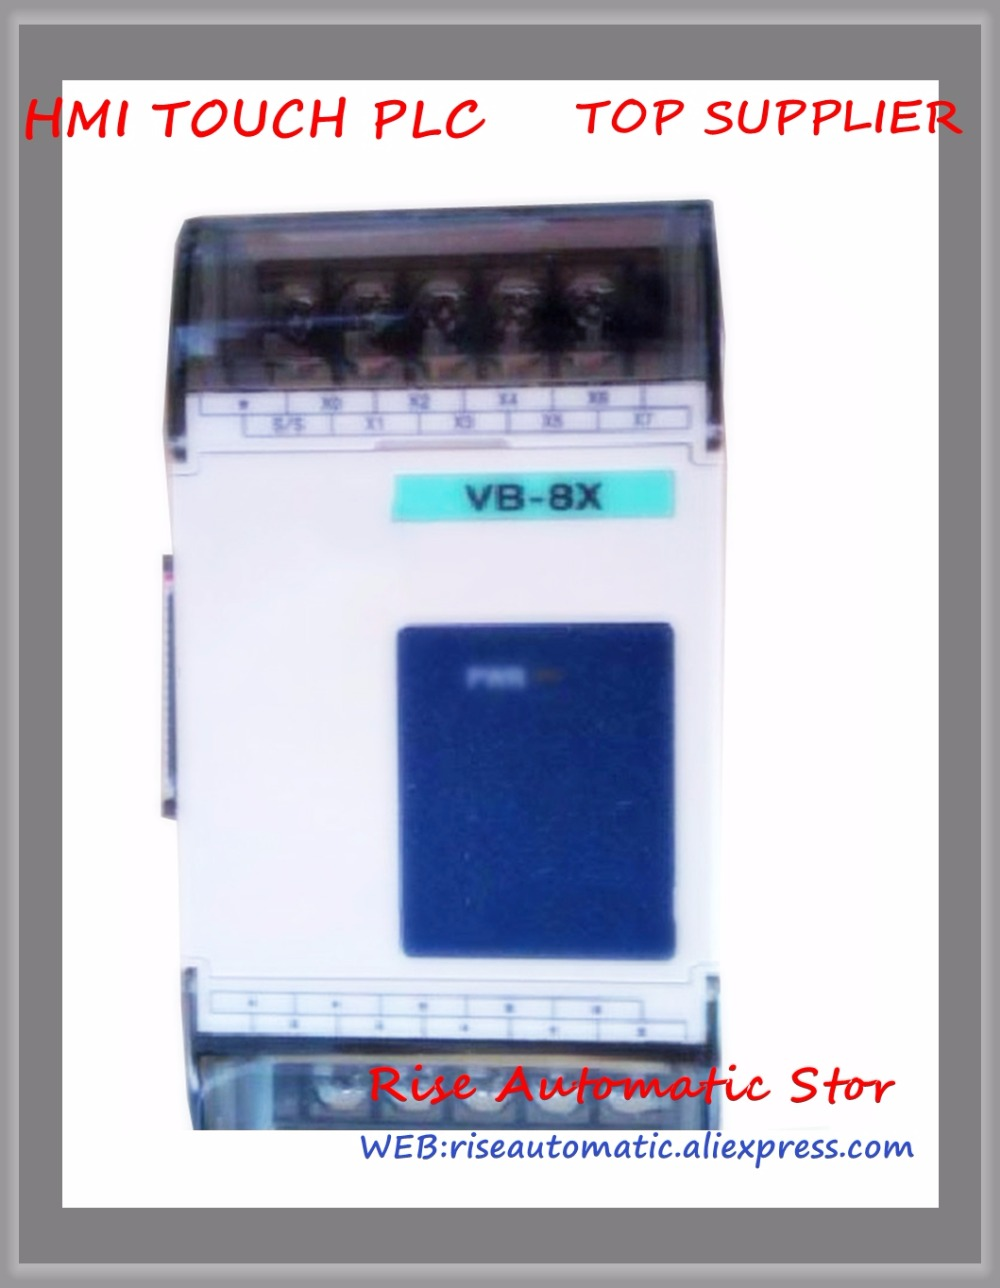 VB-8X PLC New Original 24VDC 8 point input Expansion Module new original programmable logic controller vb 8yr c plc 24vdc 8 point input expansion module